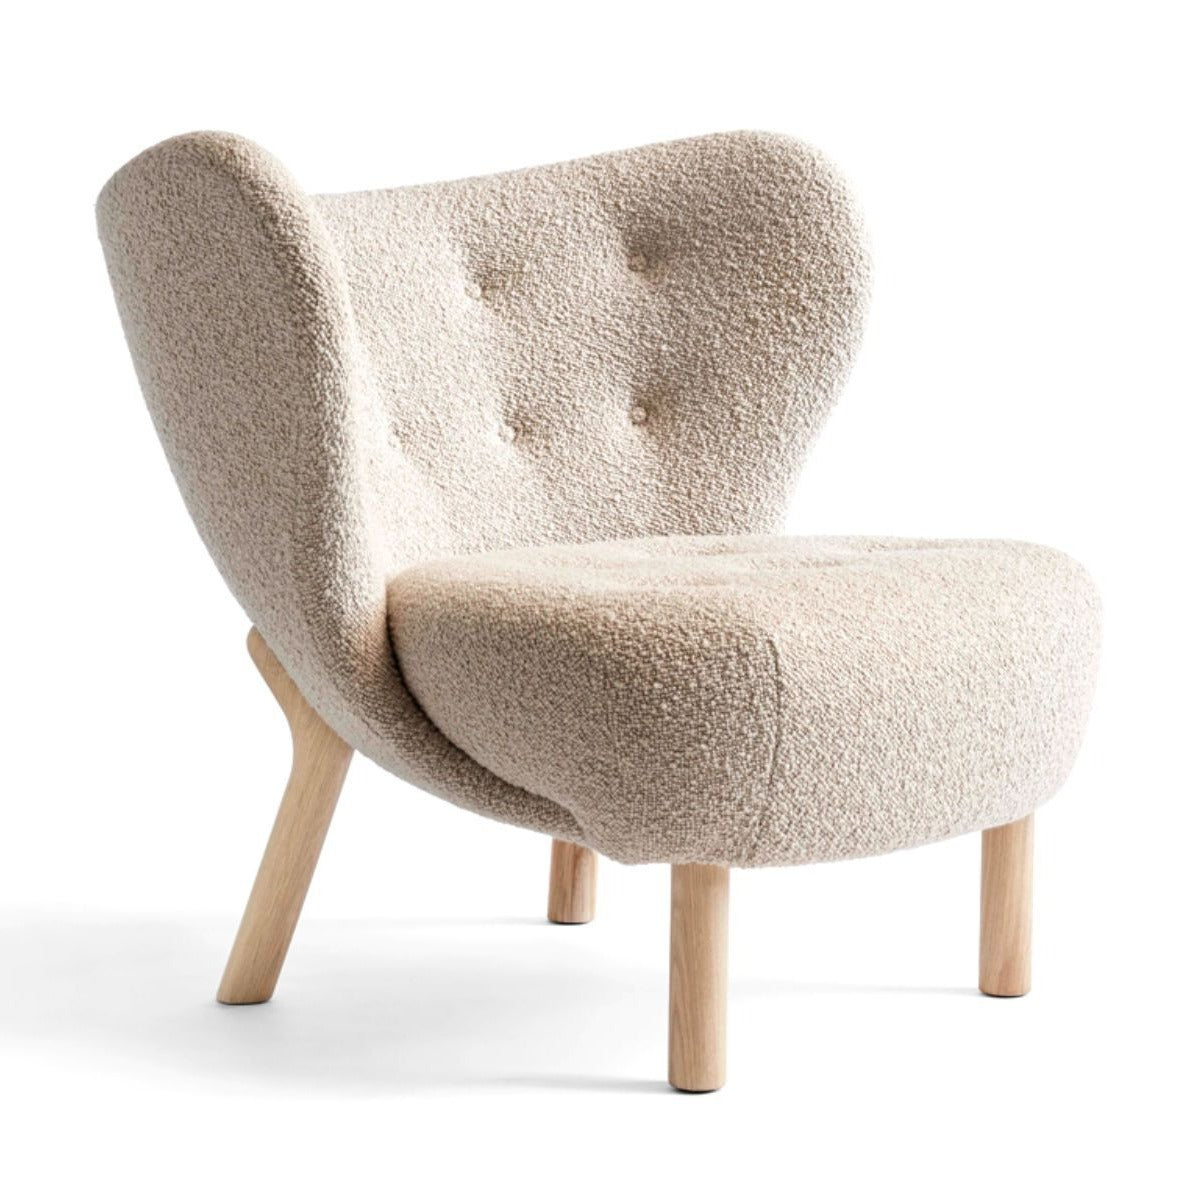 &Tradition VB1 Little Petra Lounge Chair , Karakorum003 - White Oak